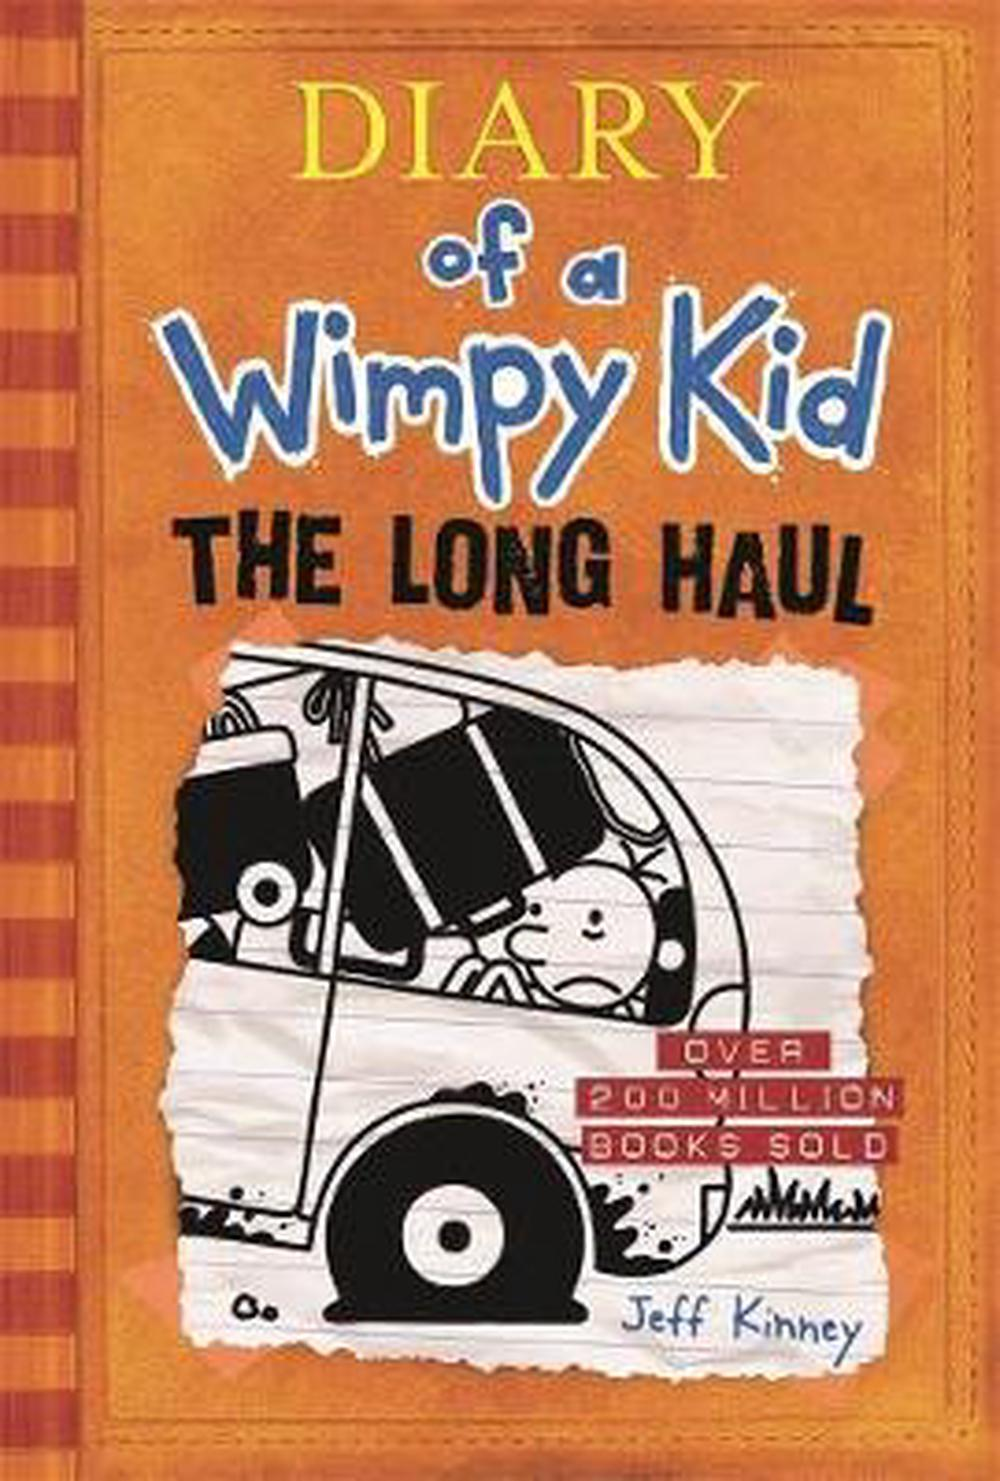 Diary of a Wimpy Kid 9 - The Long Haul